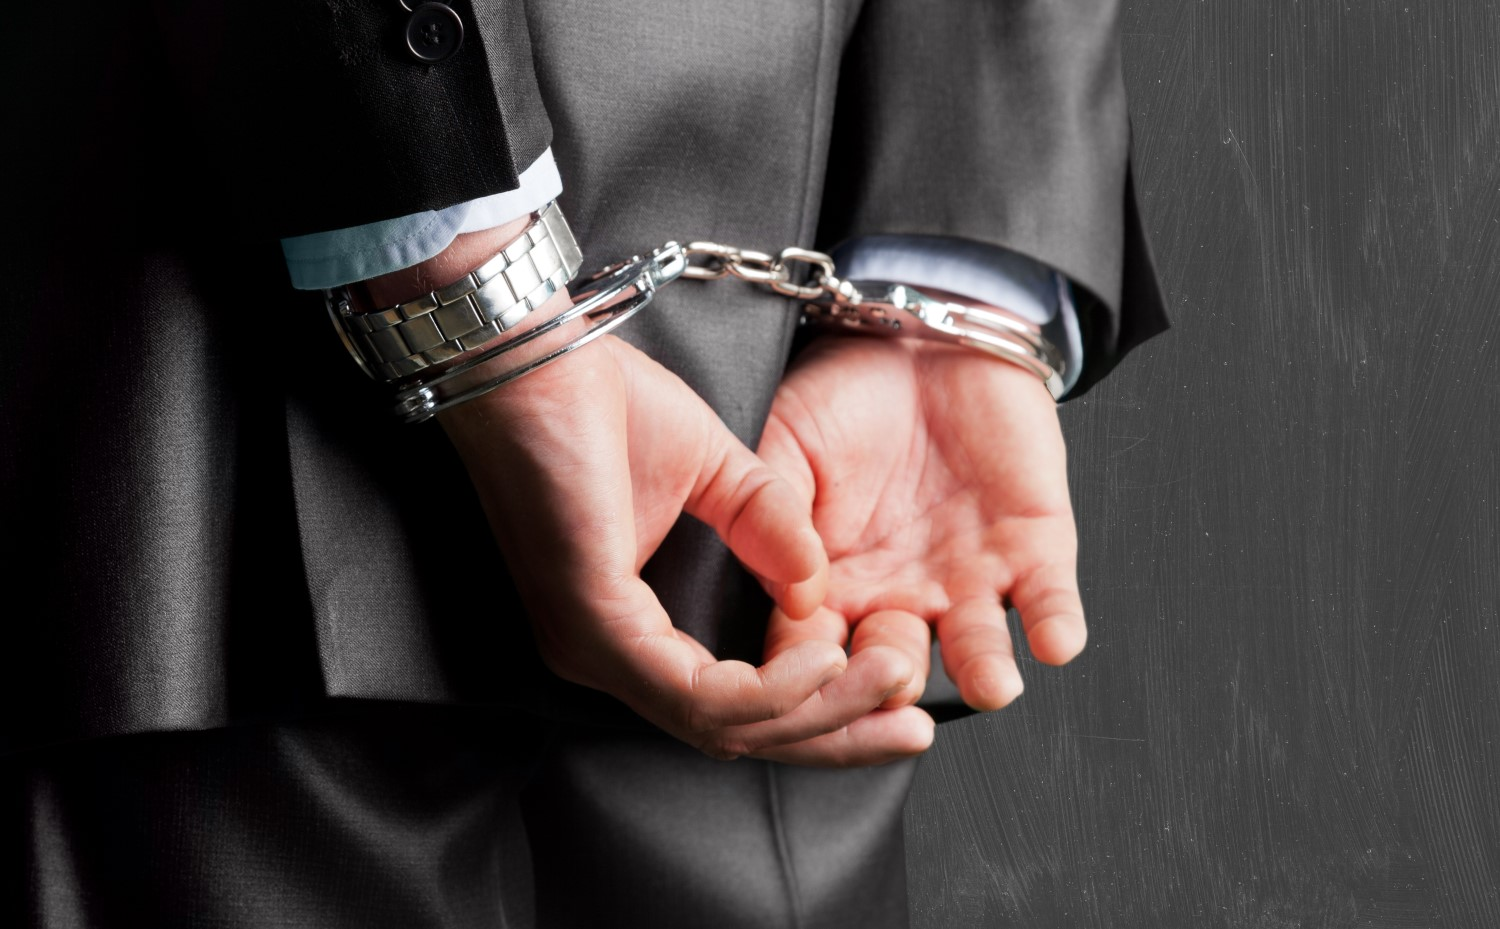 Crypto Exchange CEO Sentenced to 3-Year Jail Term for Faking Trading Volume thumbnail